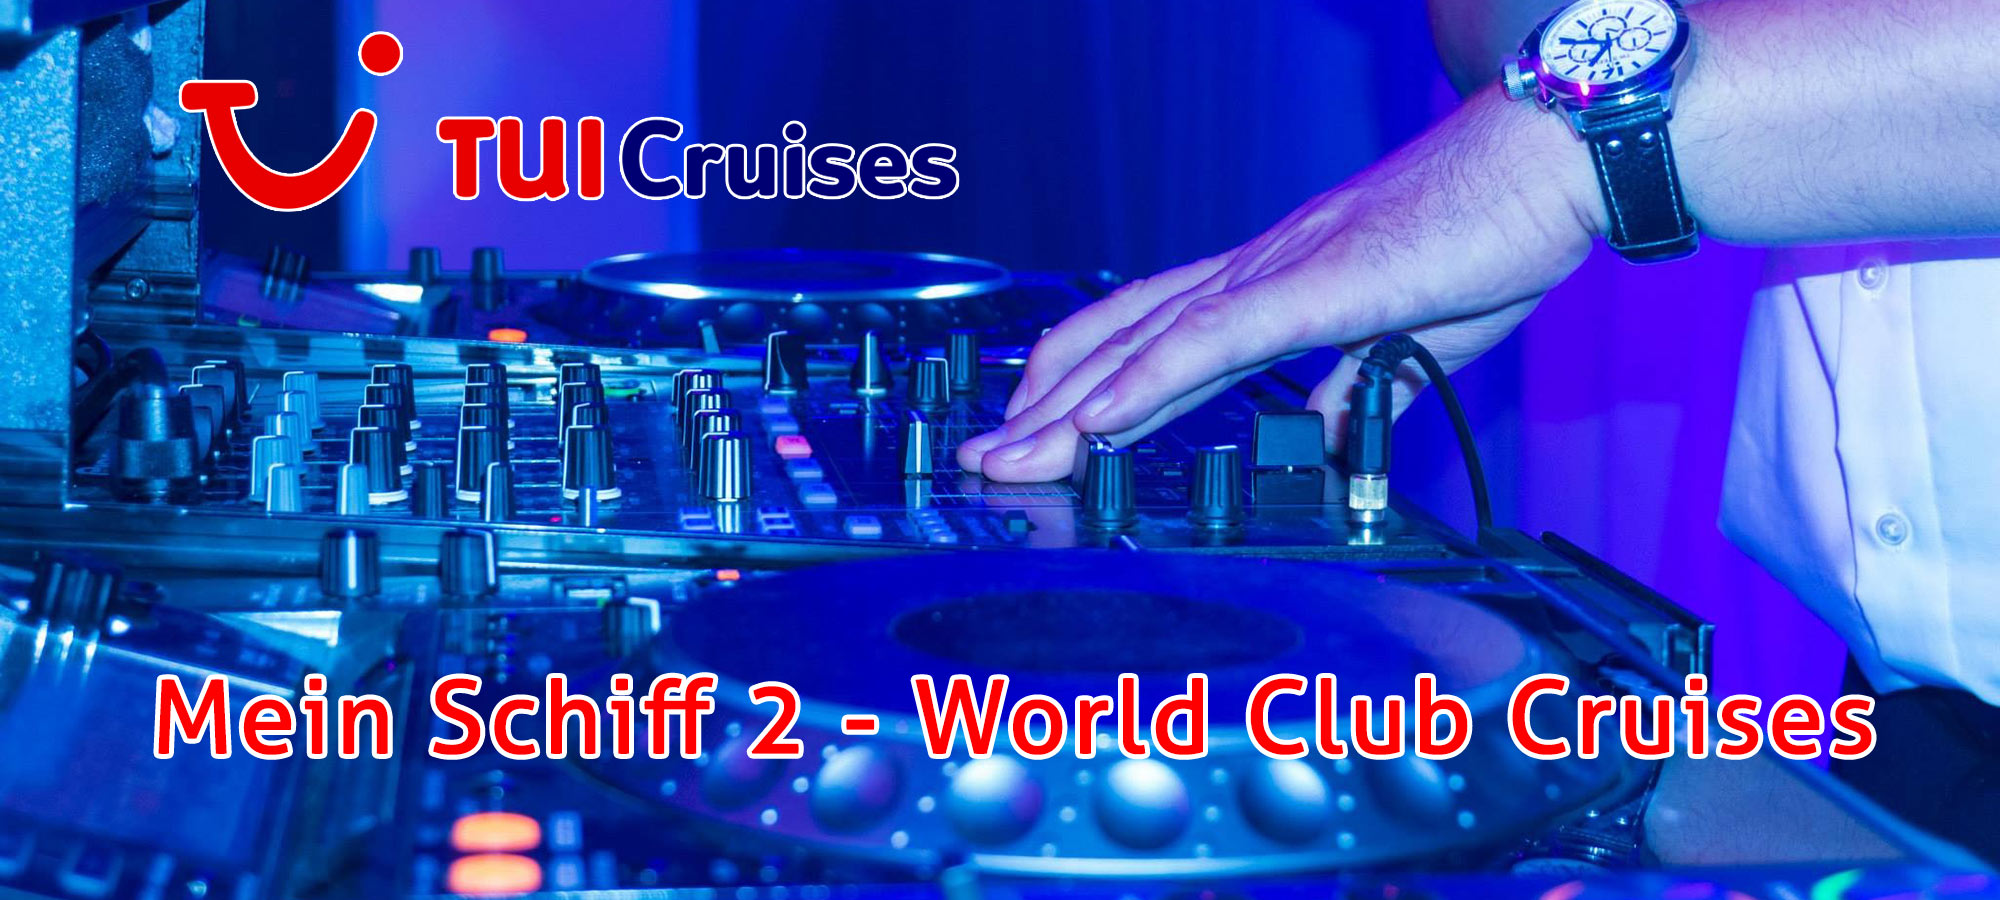 Mein Schiff 2 World Club Cruises